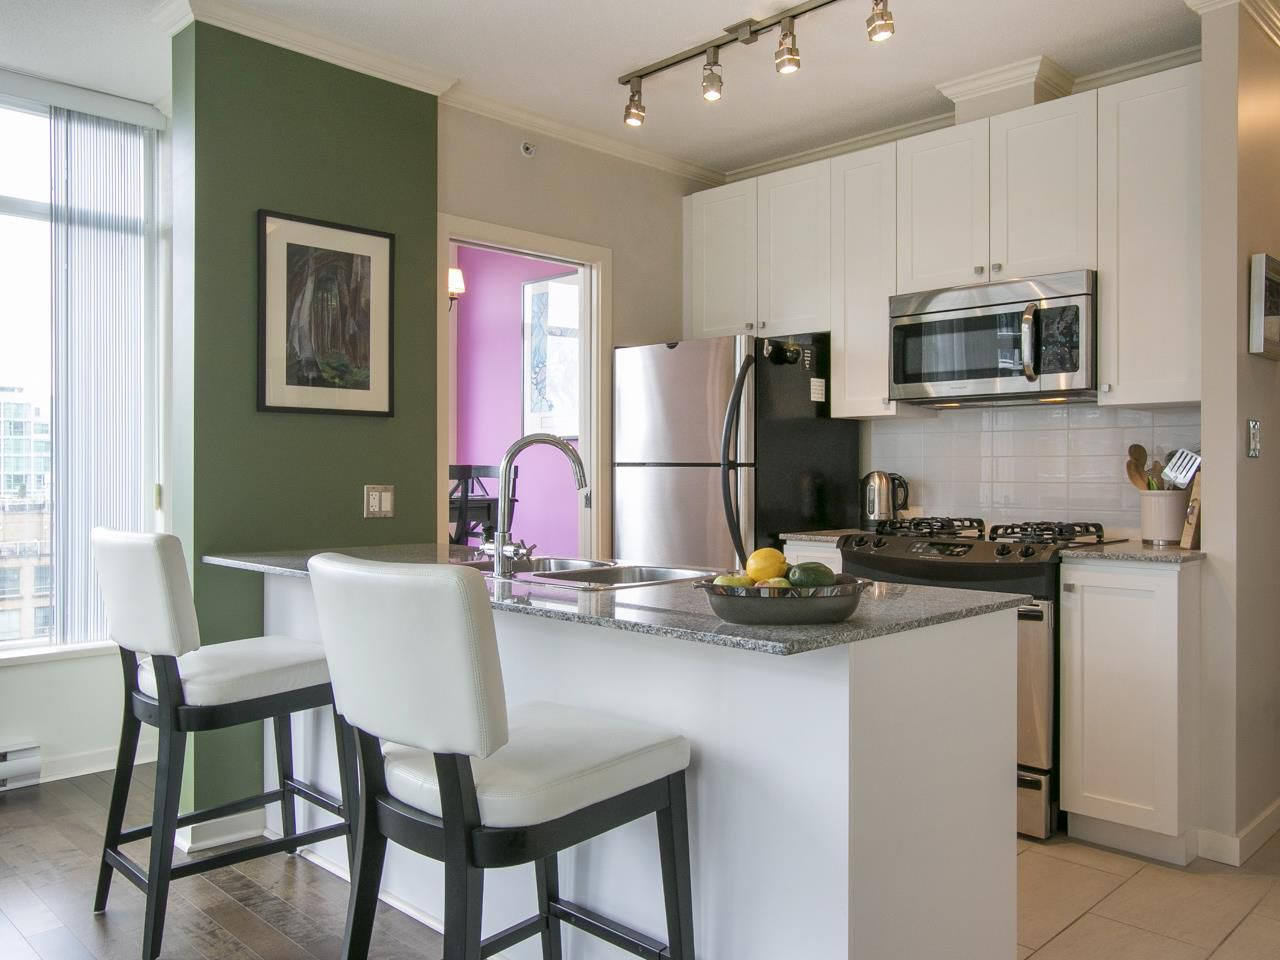 """Main Photo: 1305 480 ROBSON Street in Vancouver: Downtown VW Condo for sale in """"R&R"""" (Vancouver West)  : MLS®# R2007920"""